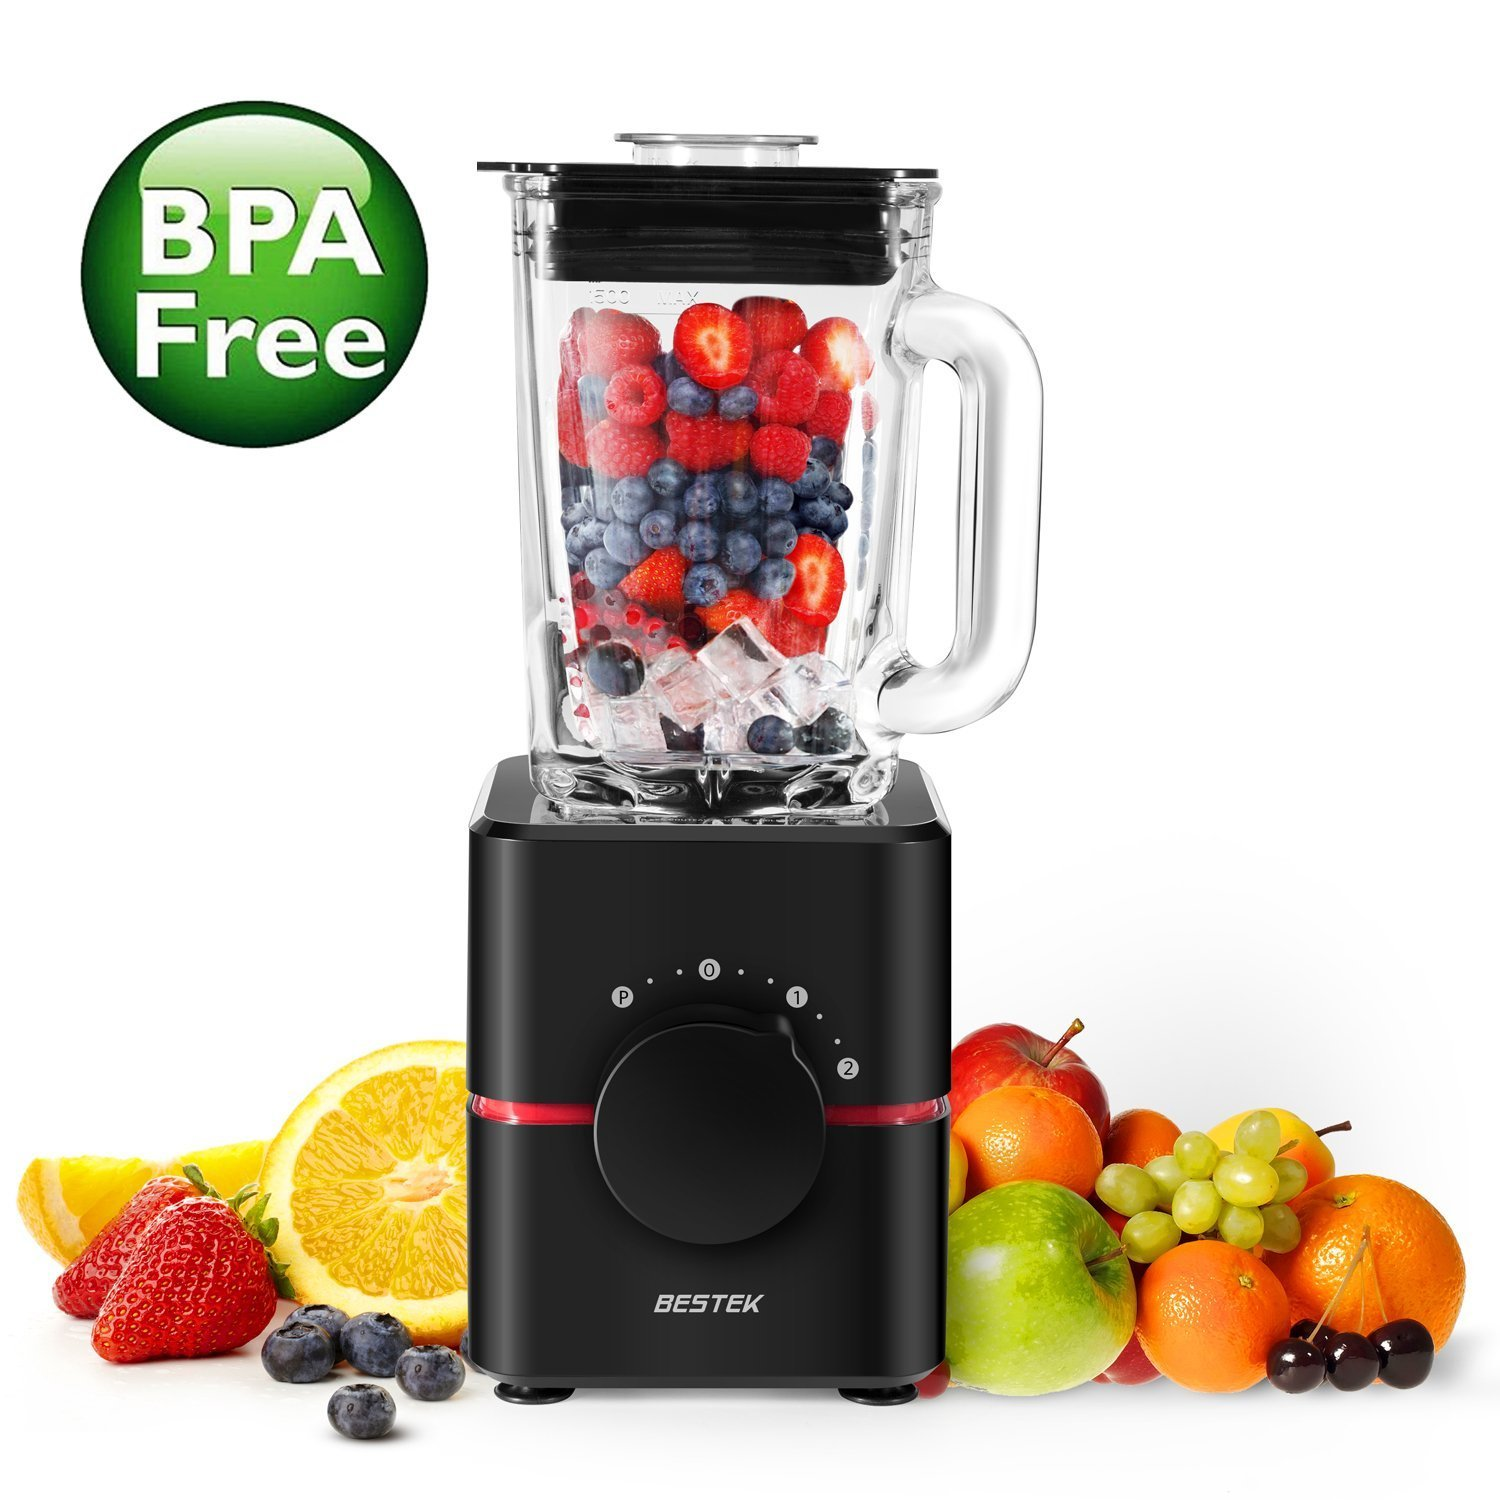 BESTEK 1000W Glass Jug Blender, Powerful Smoothie Maker, Nutri Extractor, Ice Crusher, 1.5 Liter Jar, Black BESTEK GLOBAL LTD